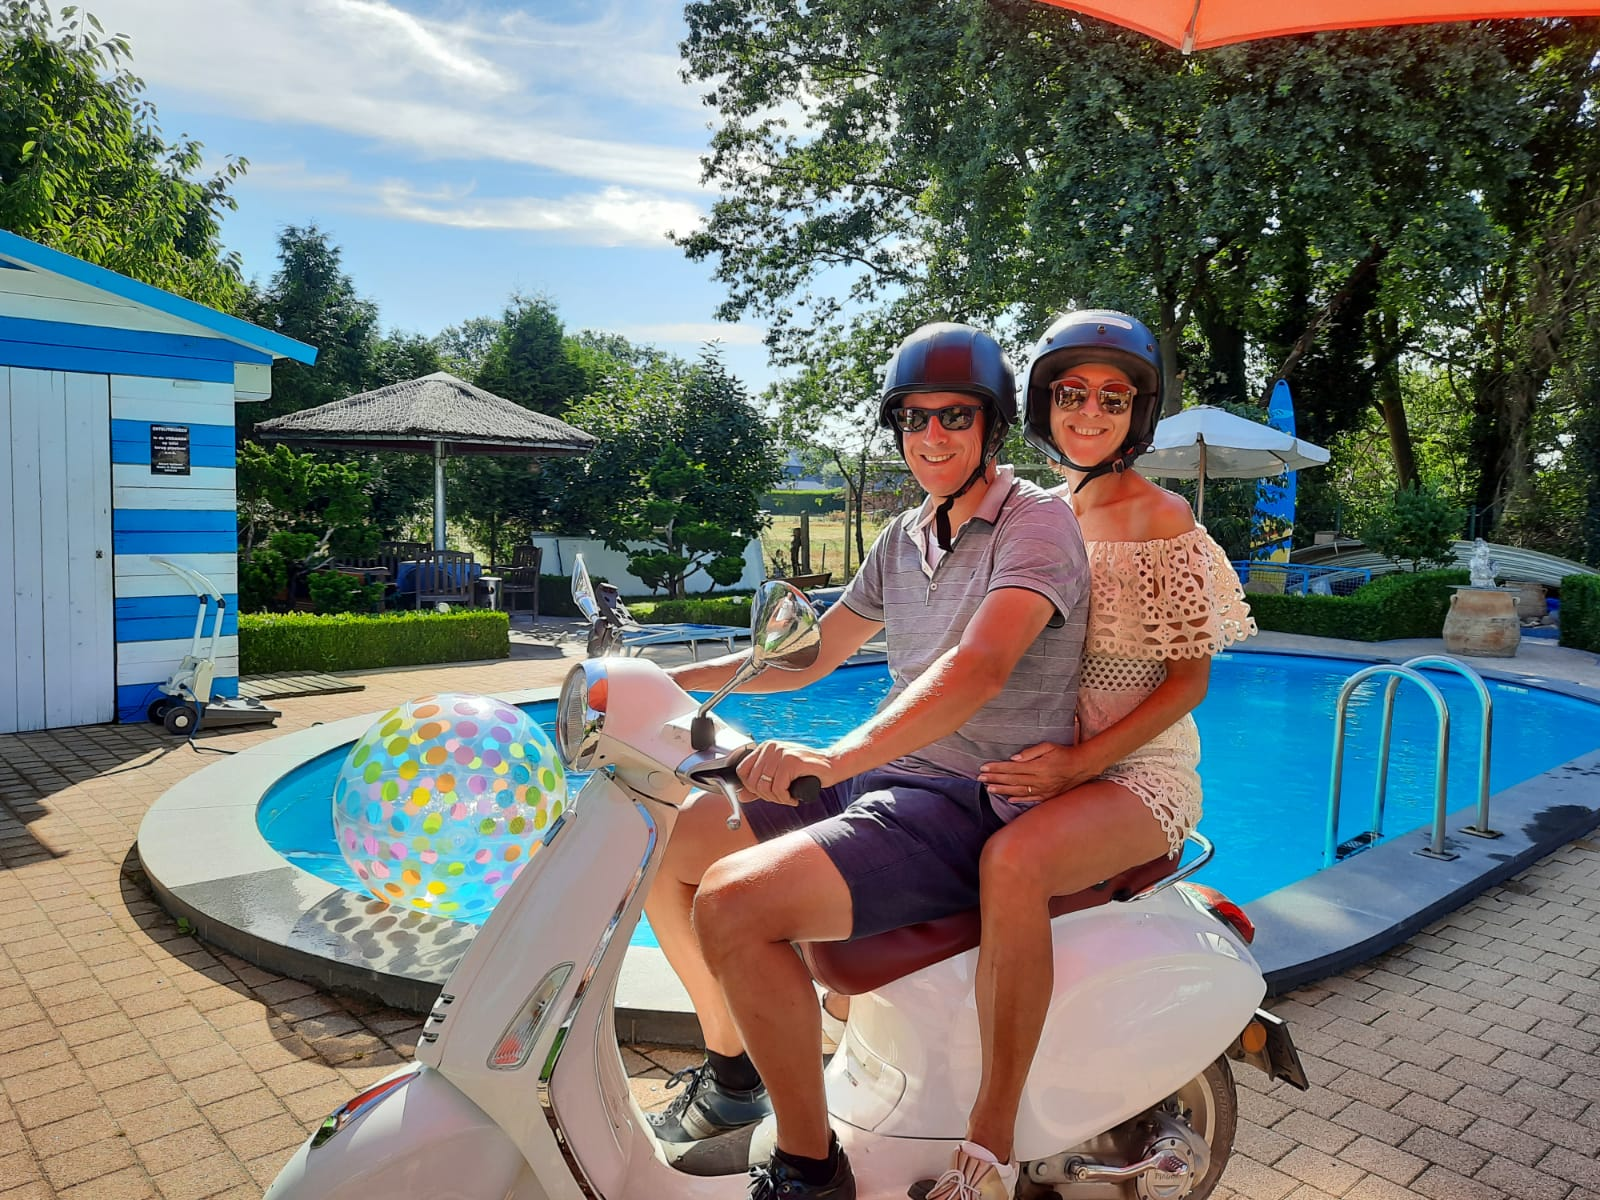 Casa Roman Deluxe - Vespa package for 2 people